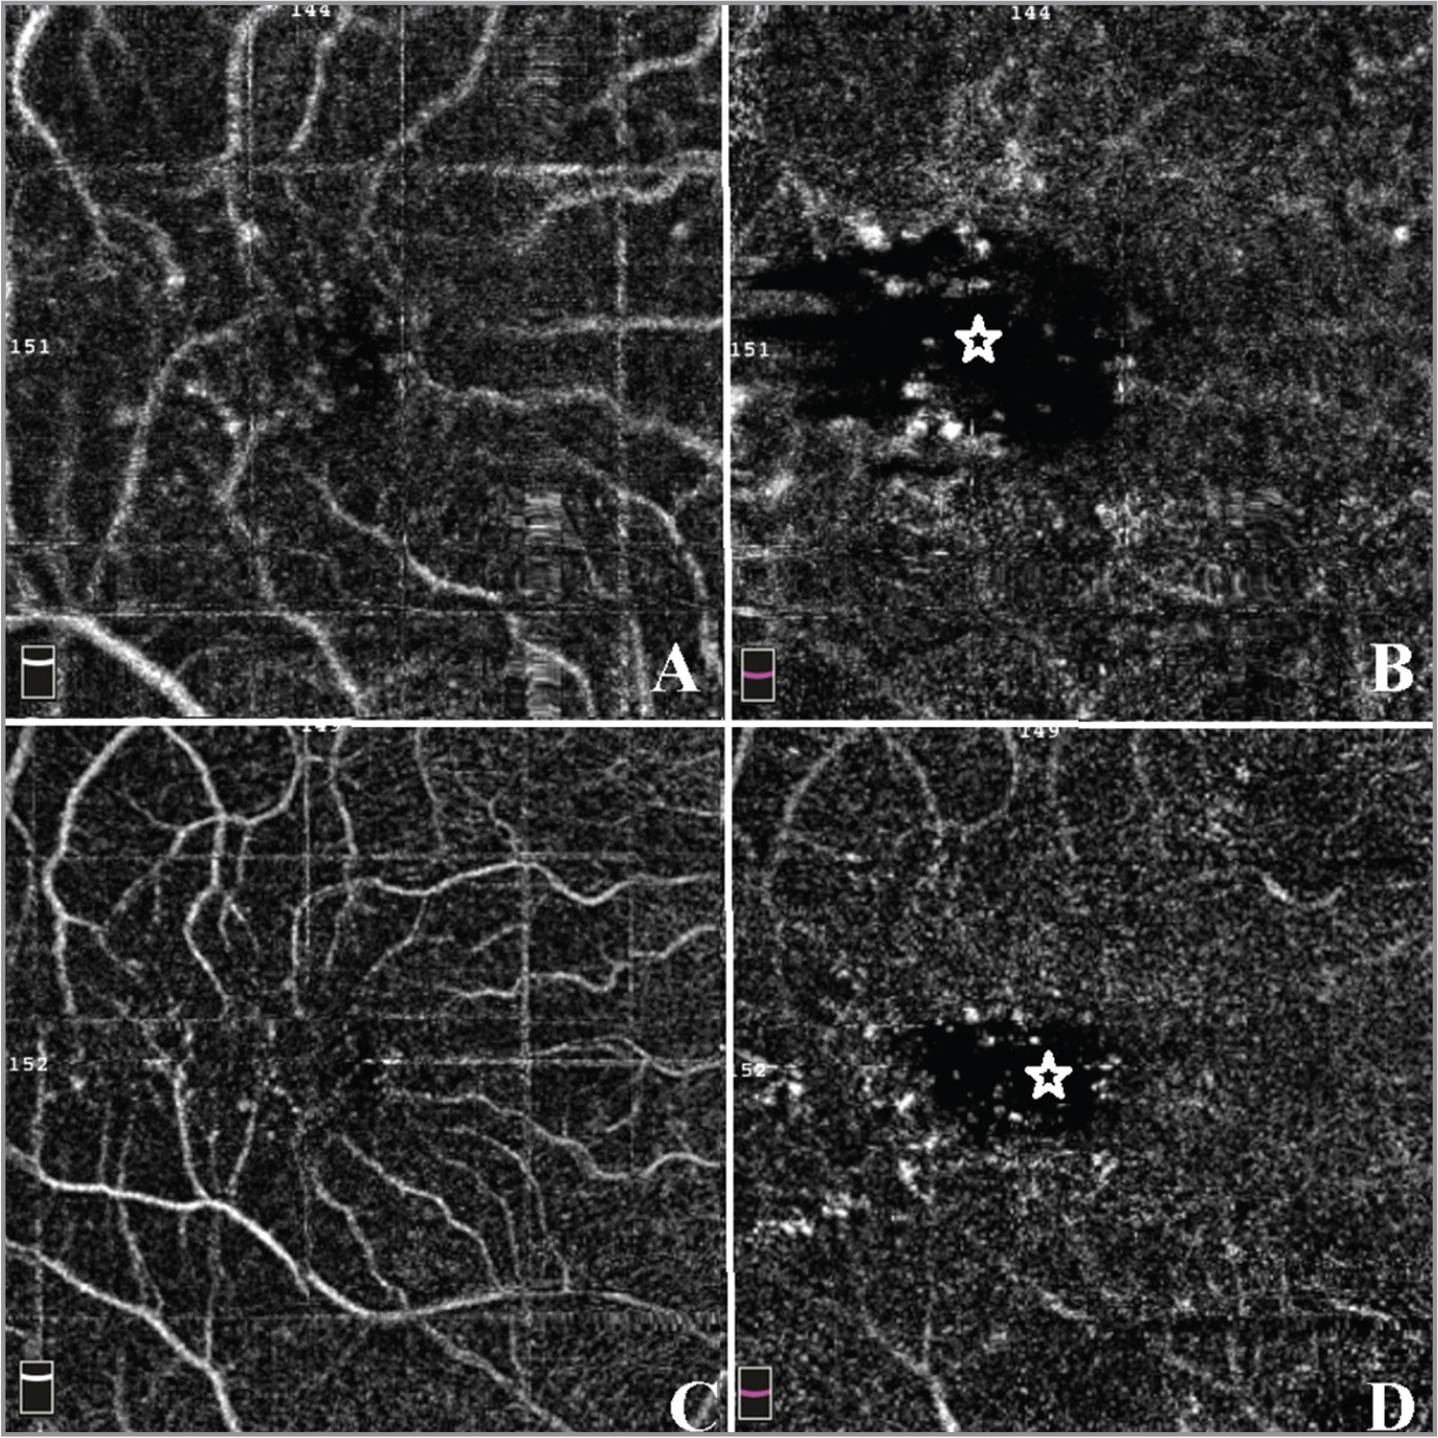 En face optical coherence tomography example of patient with diabetes with retinopathy. (A) 3 × 3 superficial capillaries area. (B) 3 × 3 deep capillaries area. (C) 6 × 6 superficial capillaries area. (D) 6 × 6 deep capillaries area. The star marks the irregularly increased foveal avascular zone area.